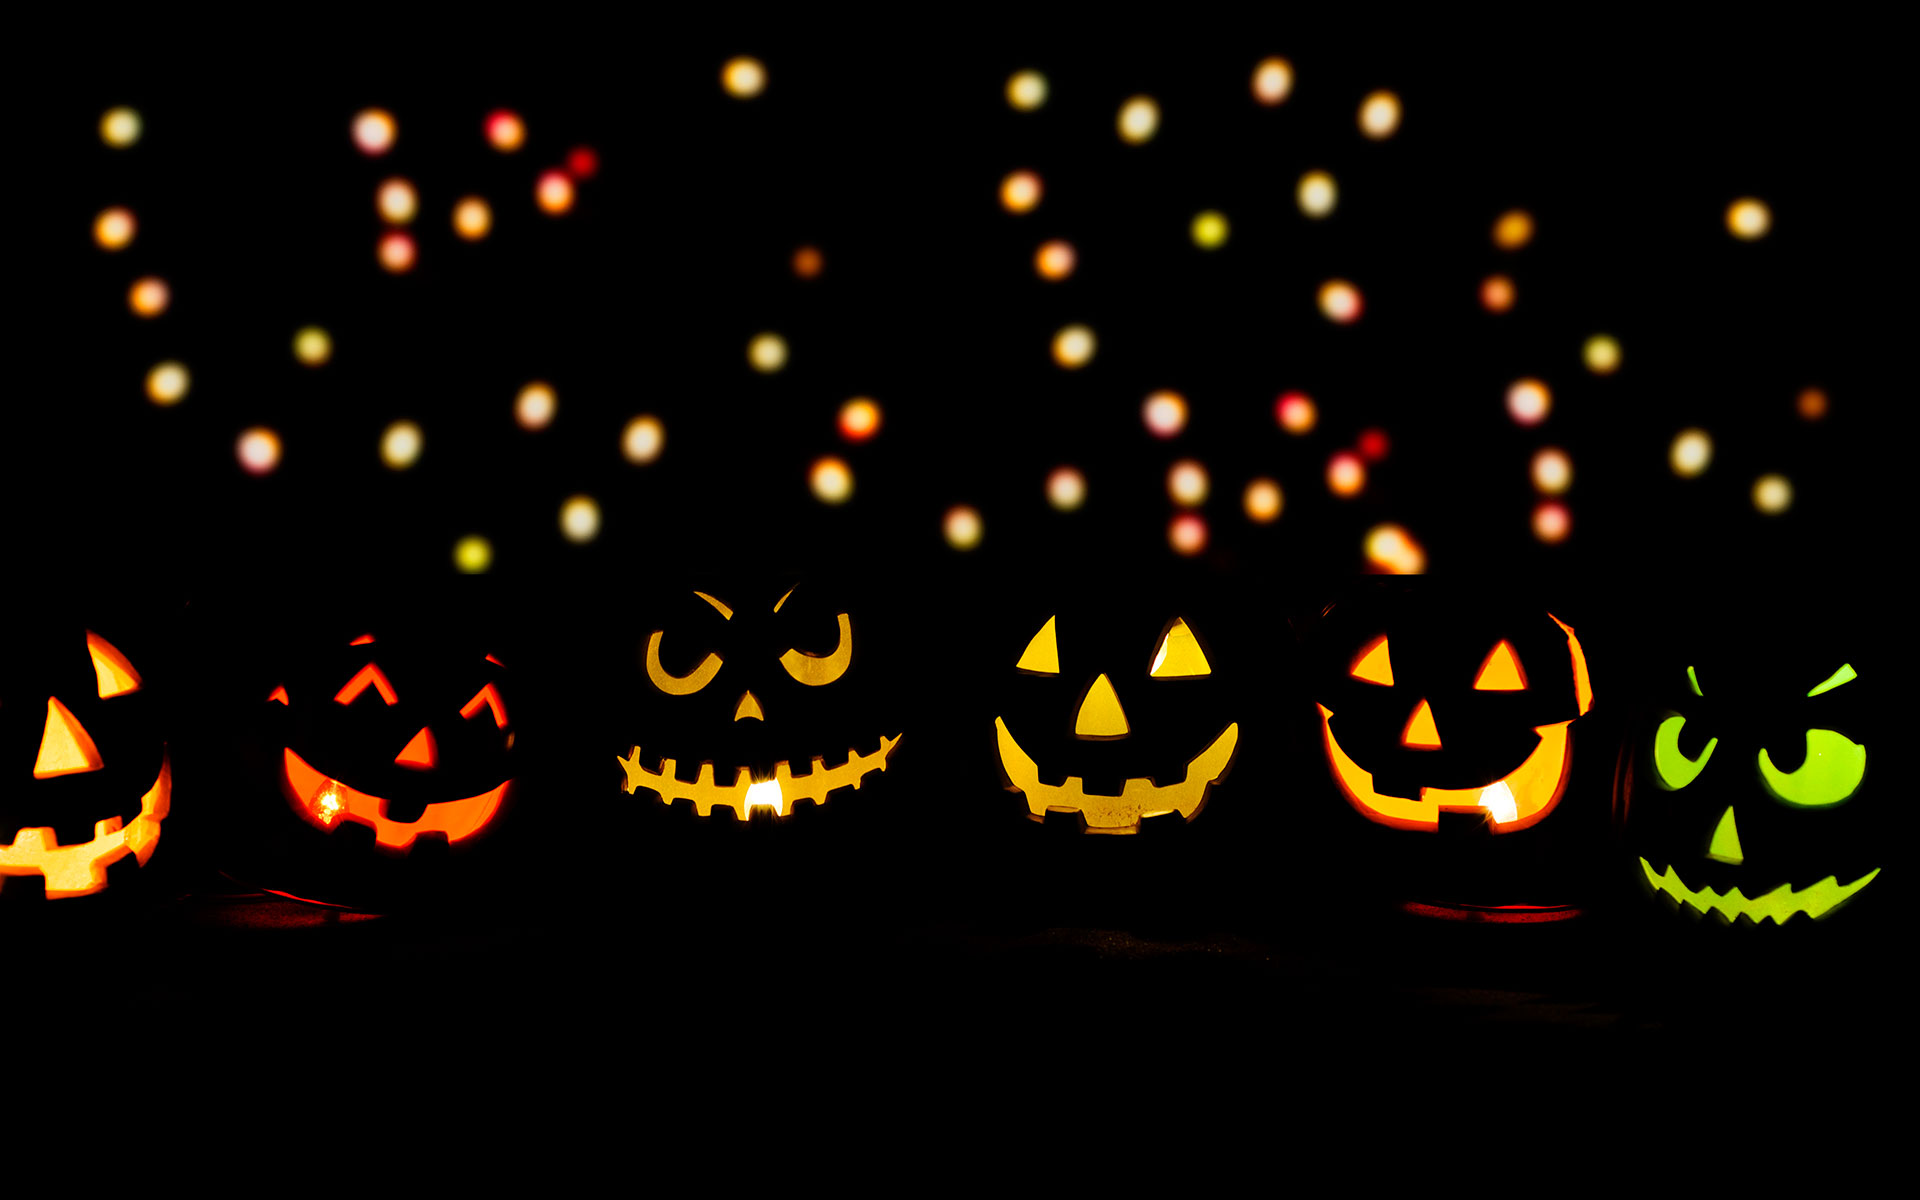 Afbeeldingen Halloween.Halloween Afbeeldingen Halloween Hd Achtergrond And